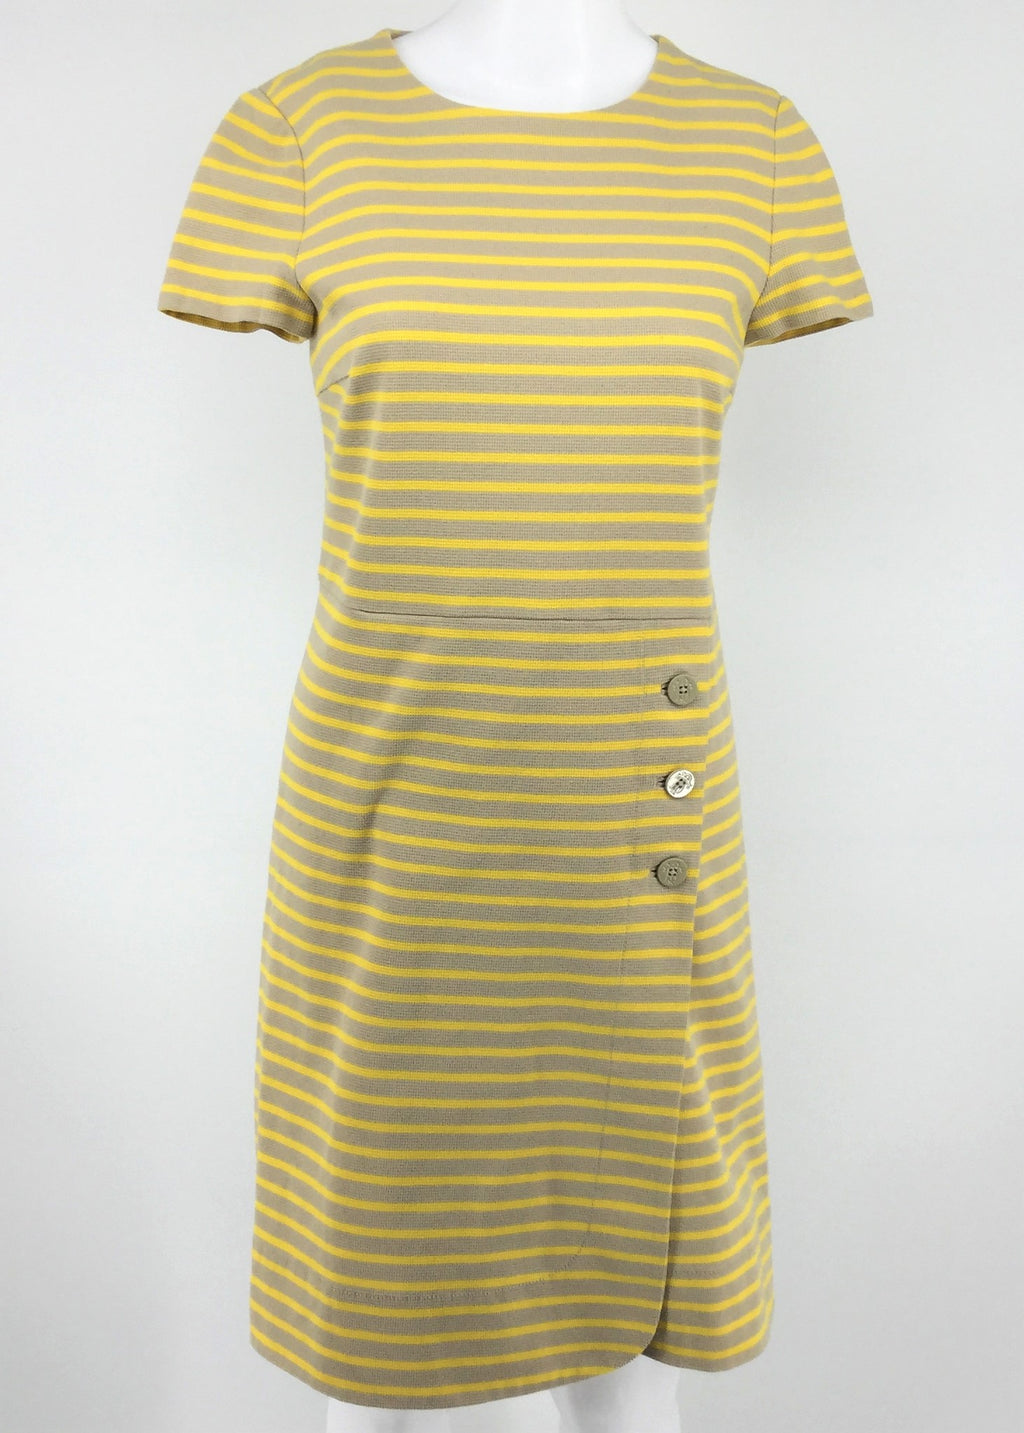 TORY BURCH DRESS SIZE:S